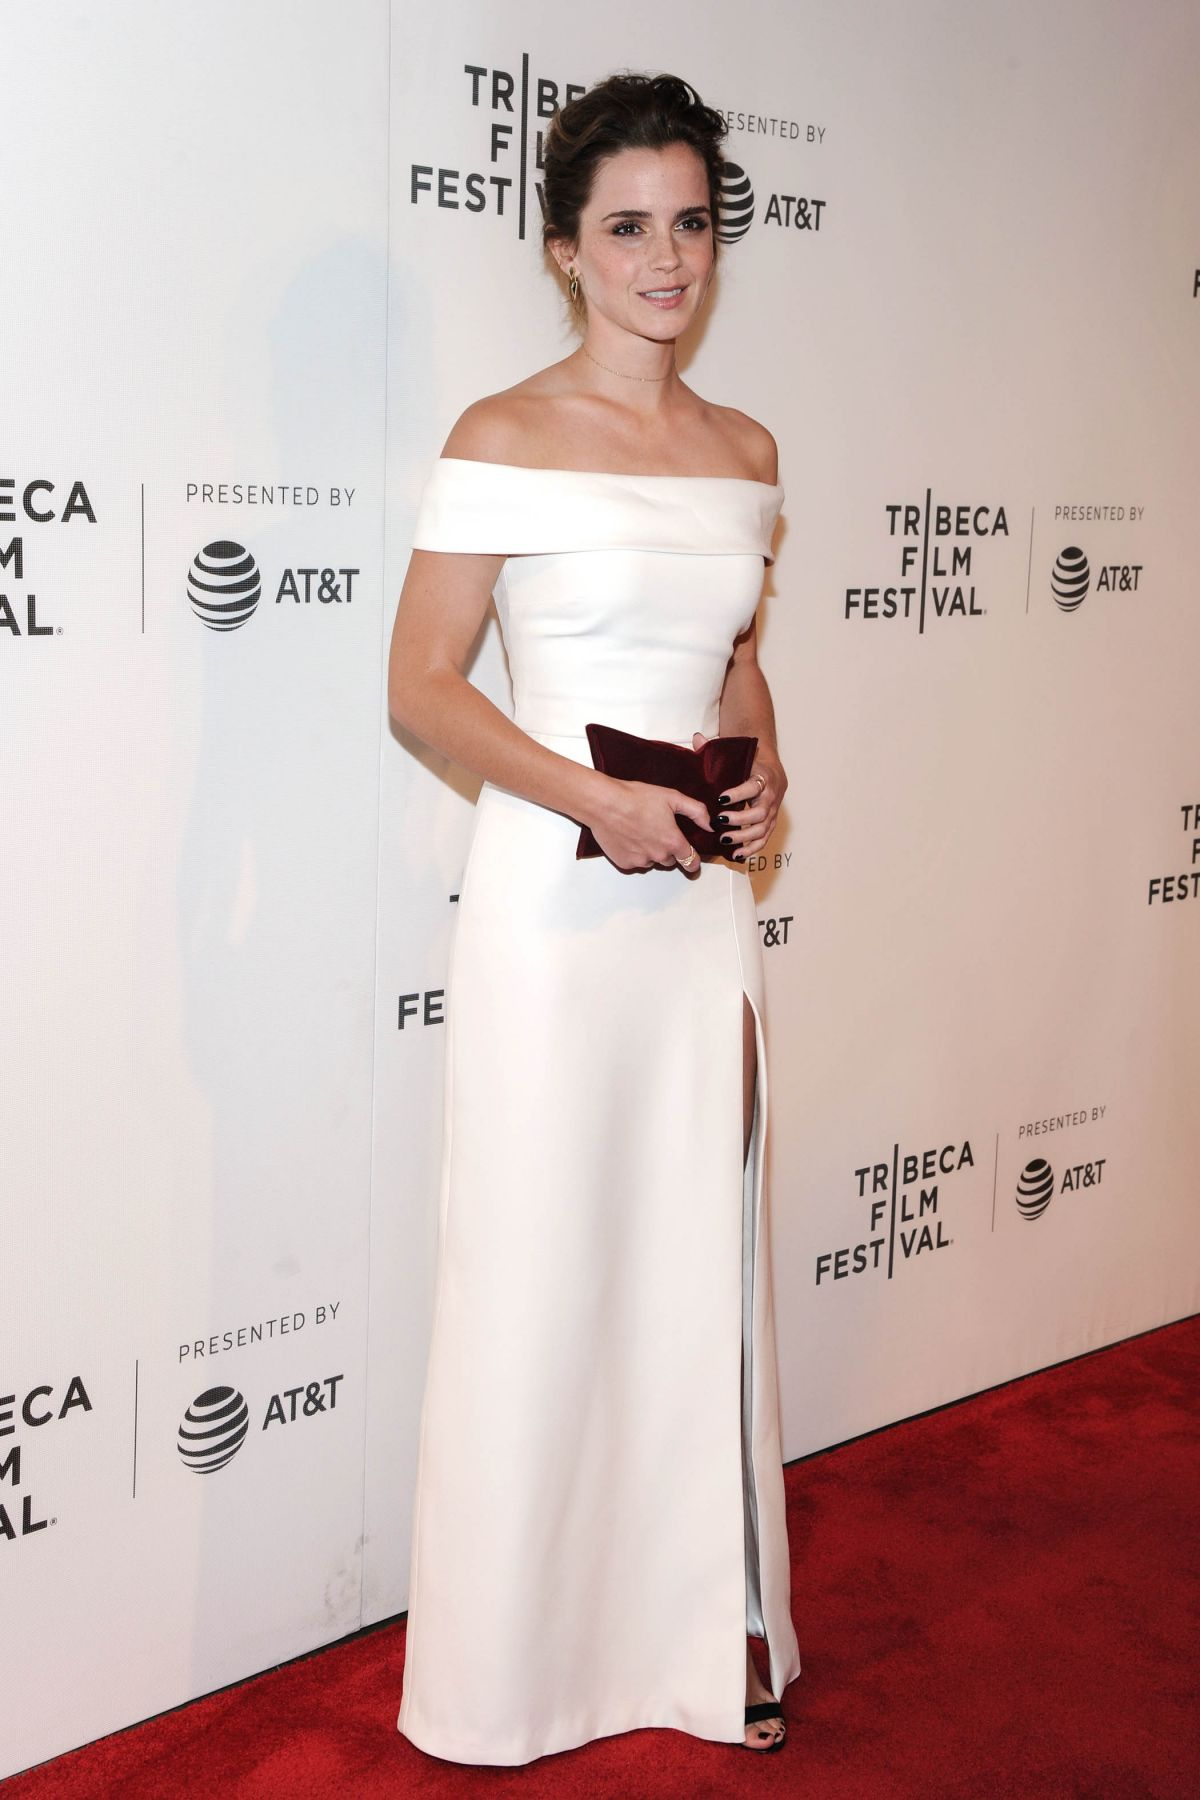 EMMA WATSON at The Circle Premiere at 2017 Tribeca Film Festival 04/26/2017